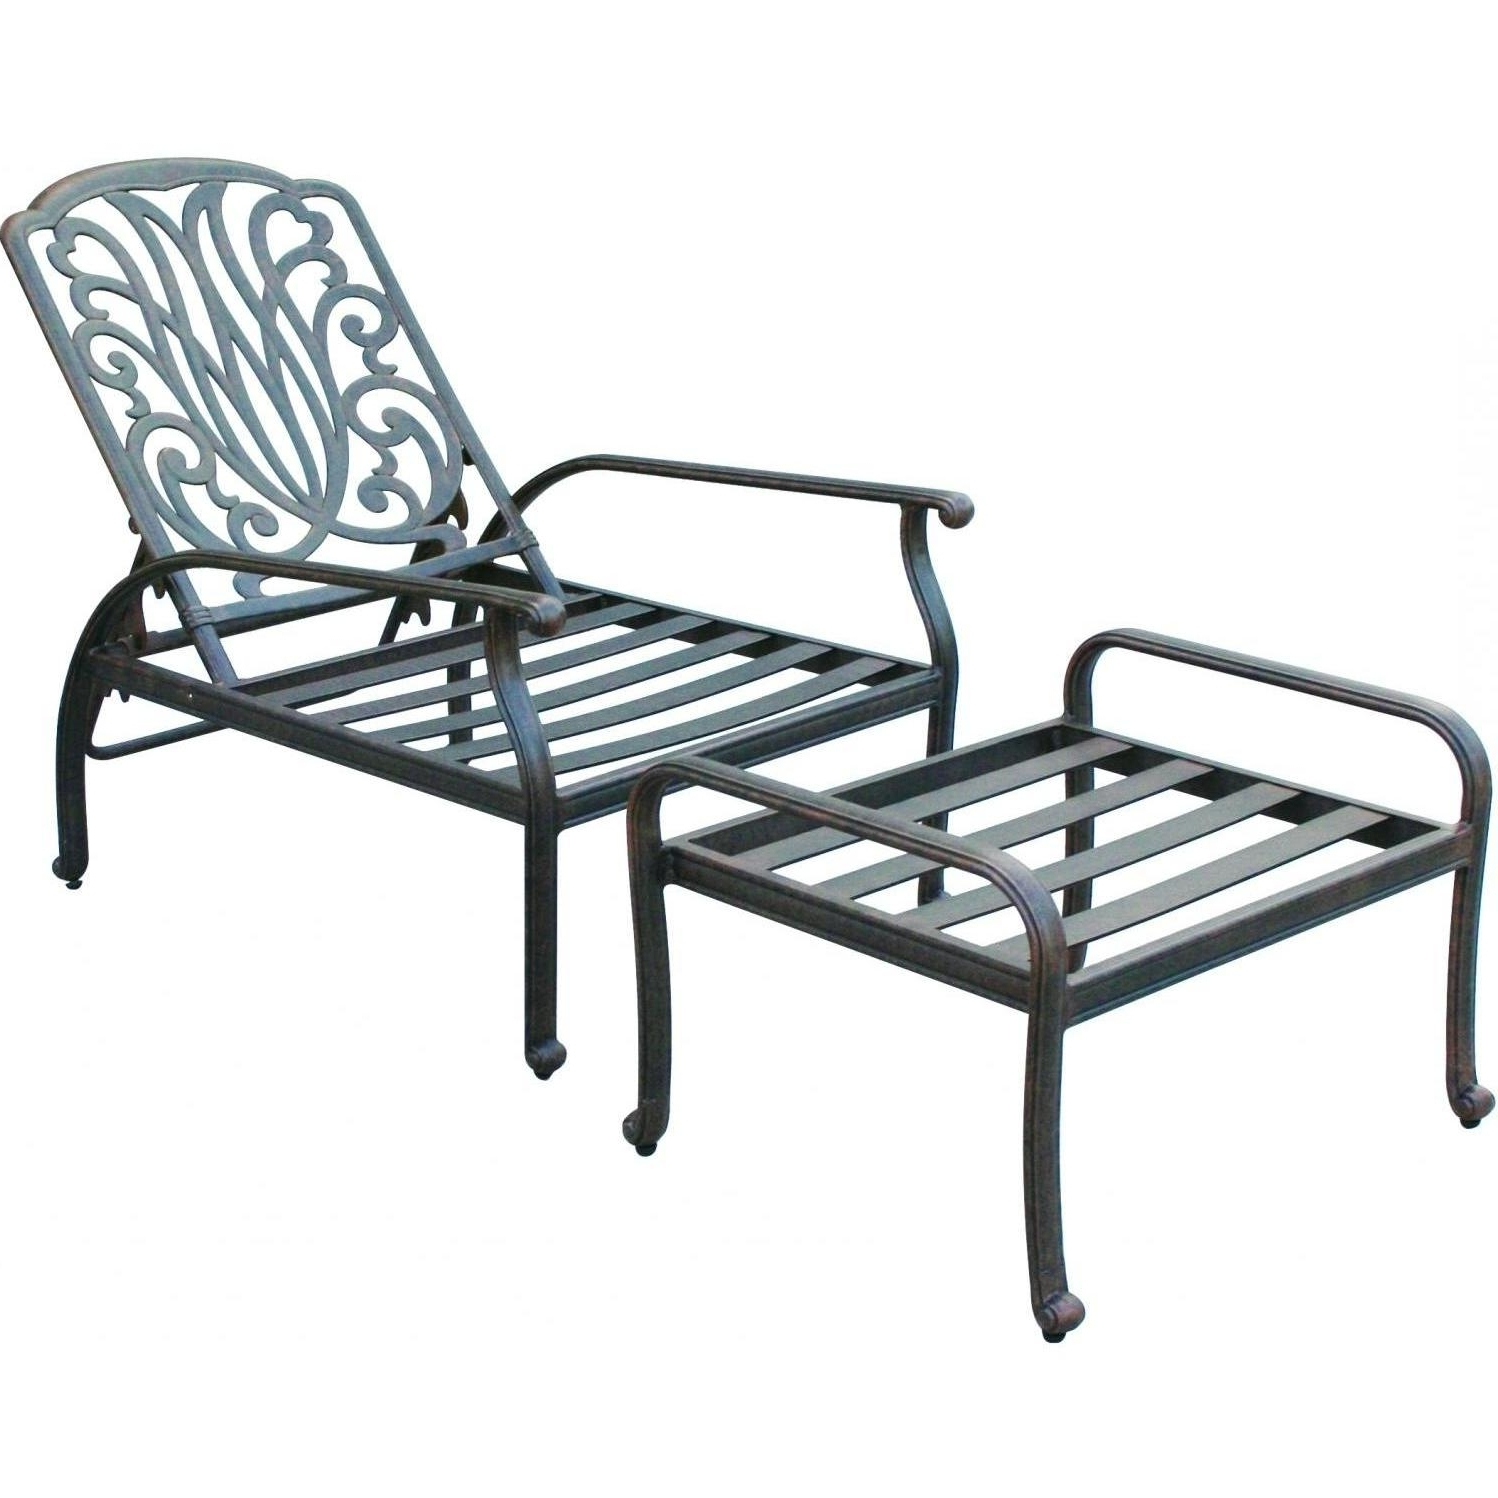 Most Current Convertible Chair : Patio Lounge Chairs On Sale Buy Outdoor Lounge With Portable Outdoor Chaise Lounge Chairs (View 3 of 15)